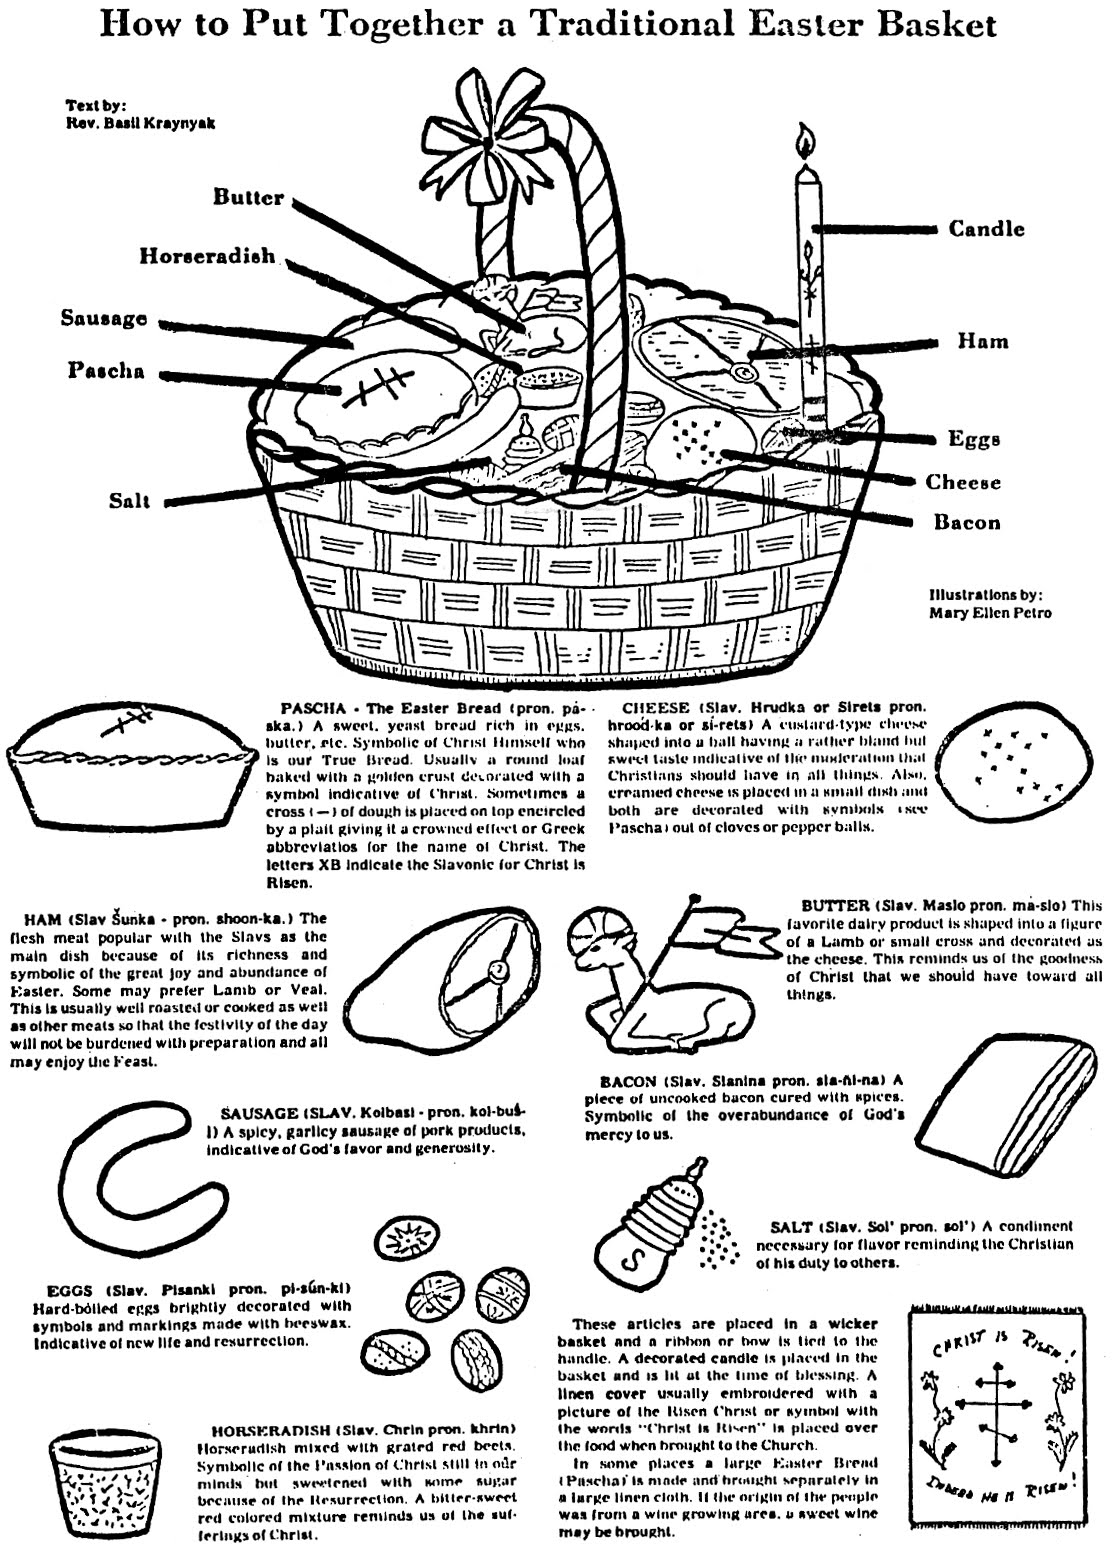 How to Put Together a Tradition Easter Basket